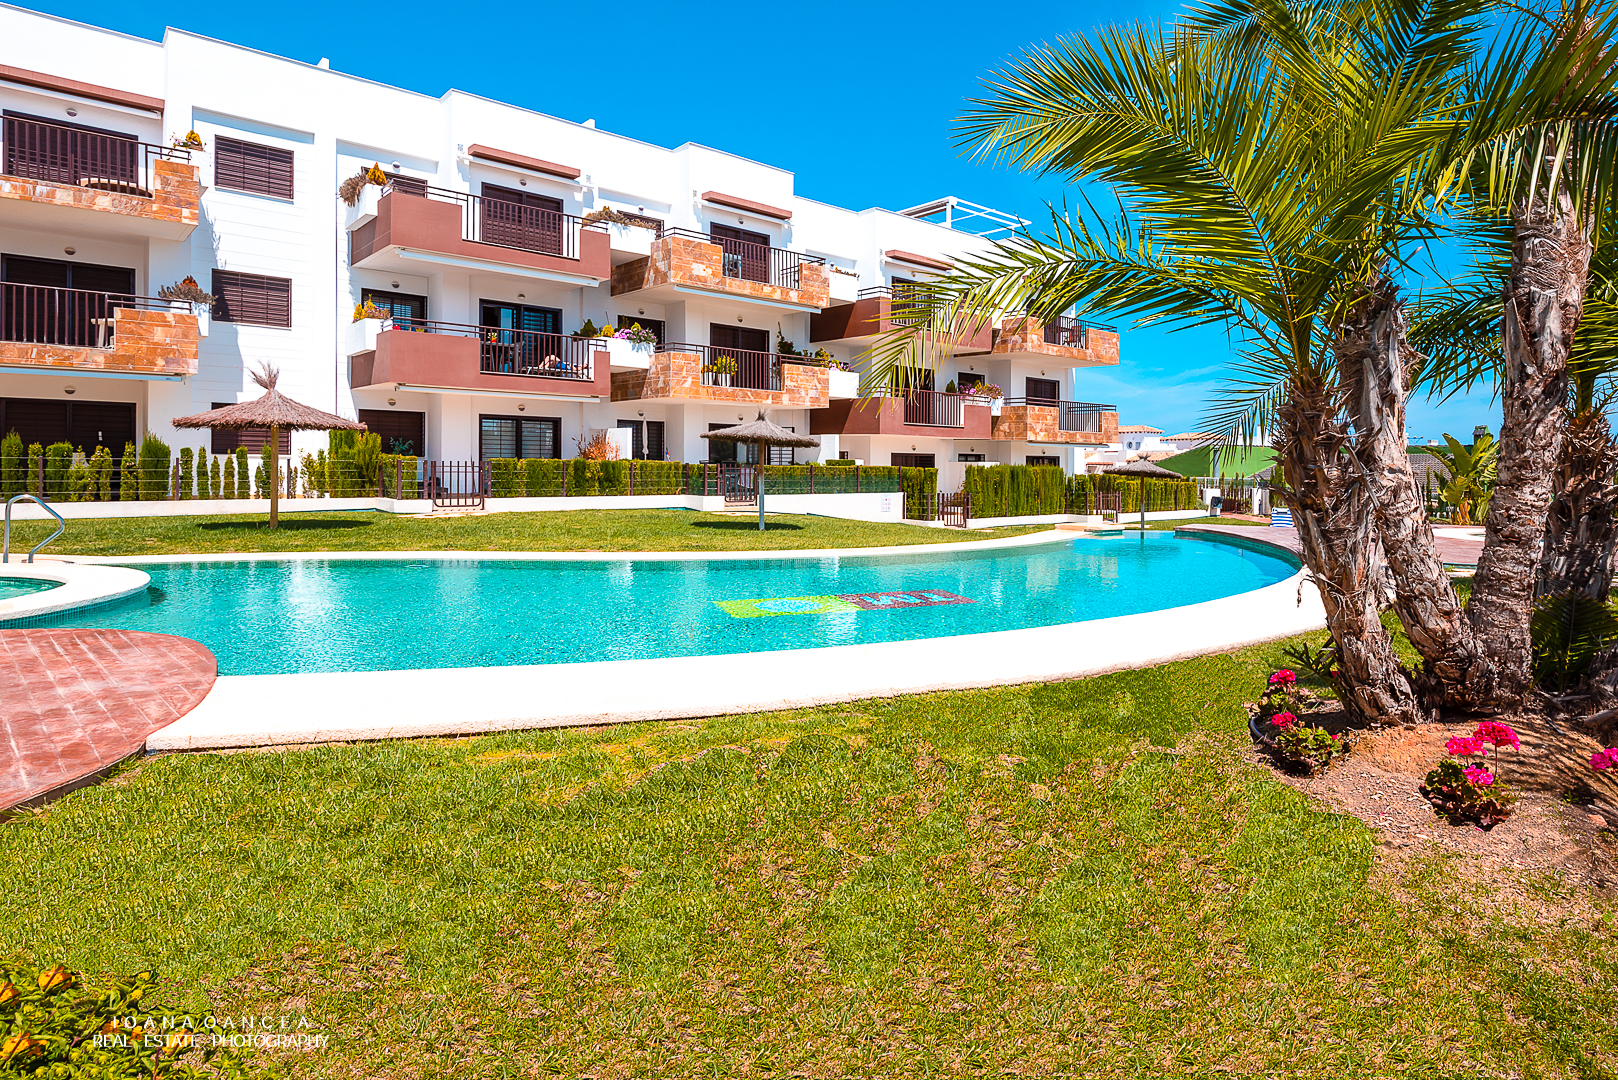 Silene 2, Large apartment  with communal pool in Orihuela Costa, on the Costa Blanca, Spain for 4 persons.....